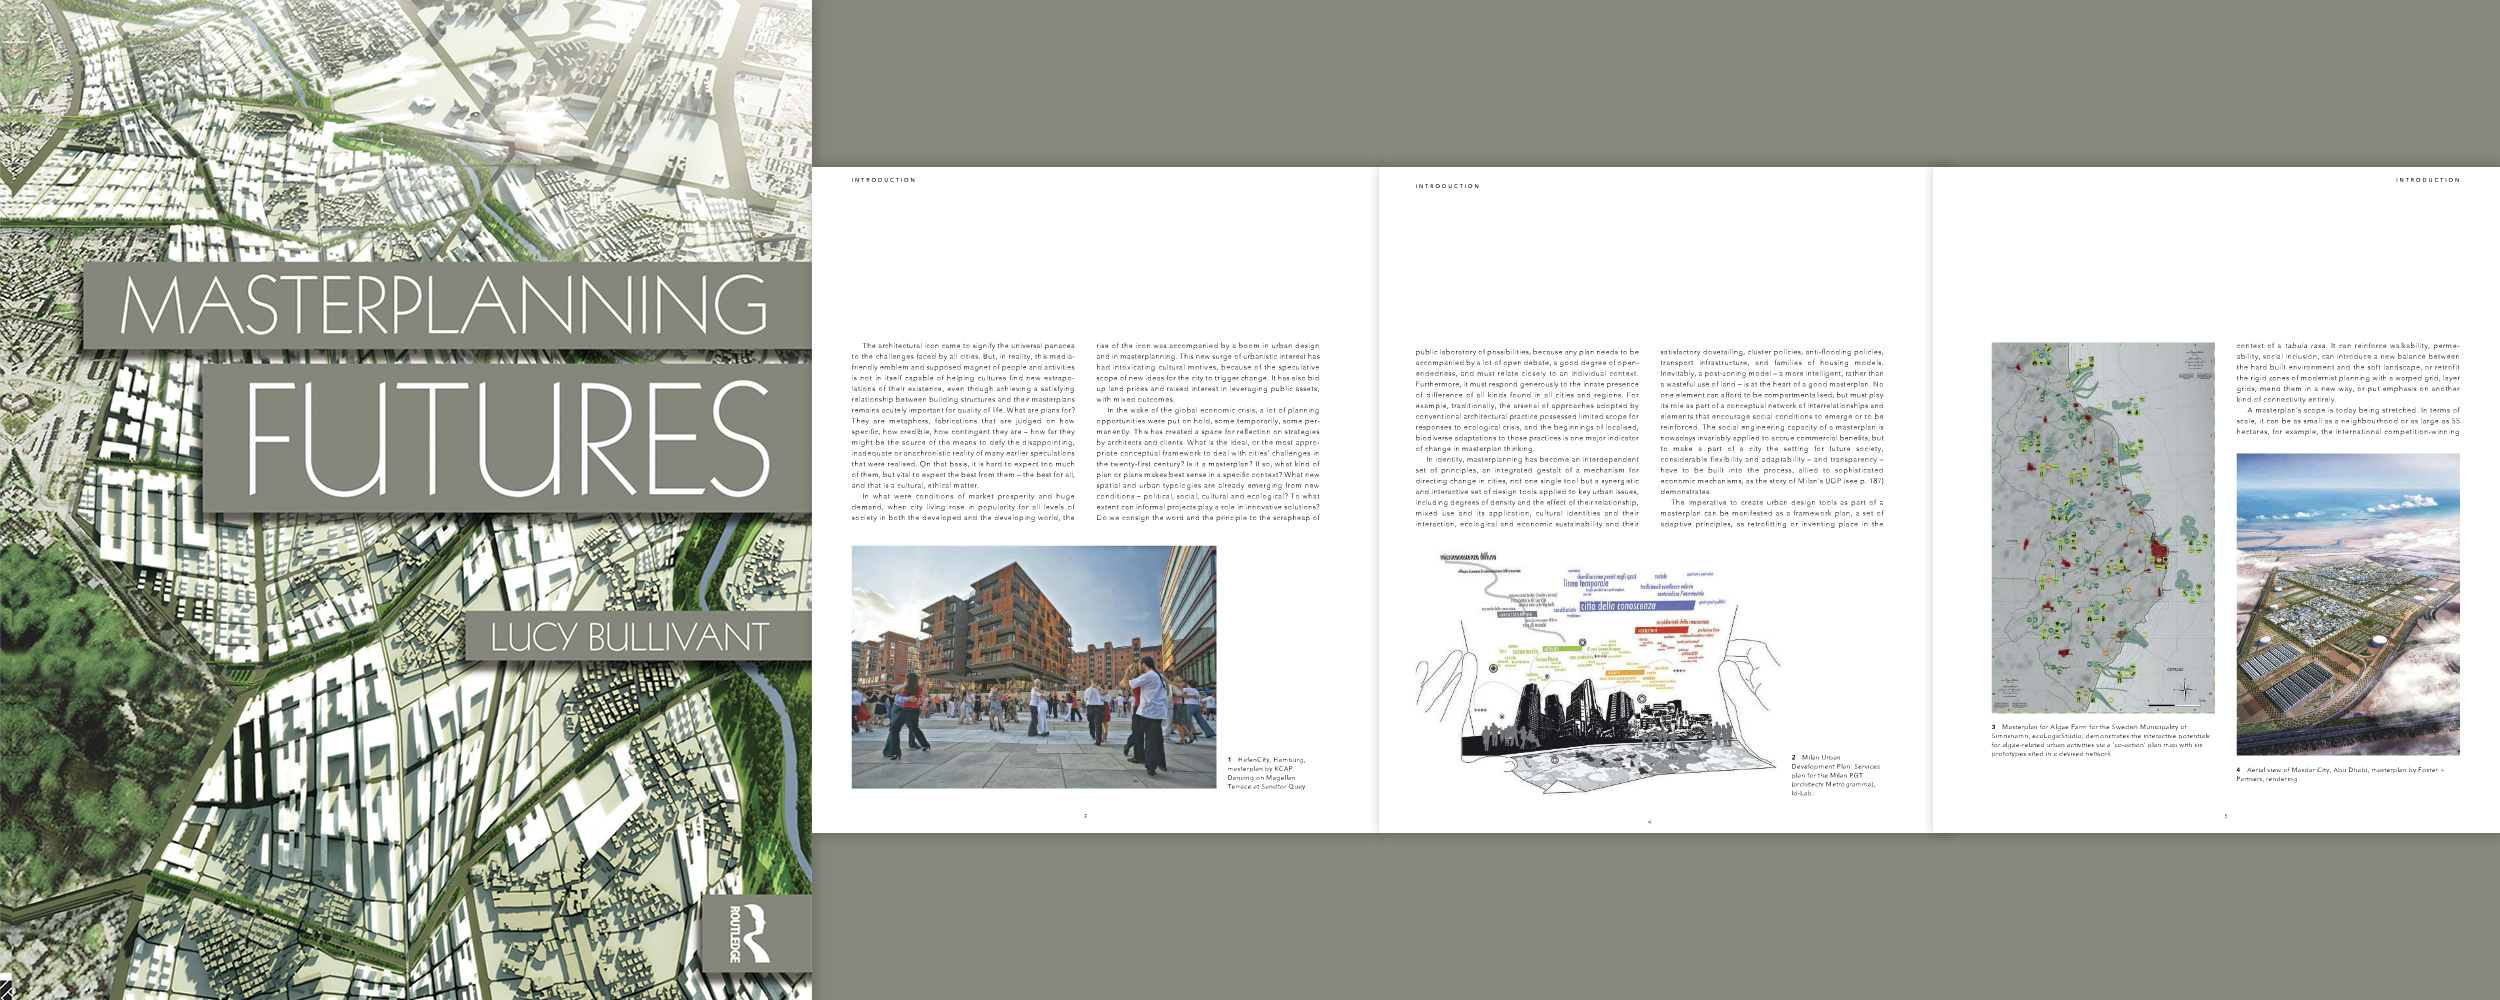 Masterplanning Futures, Lucy Bullivant, Rutledge, 2012. Winner of Book of the Year, Urban Design Group, 2014.